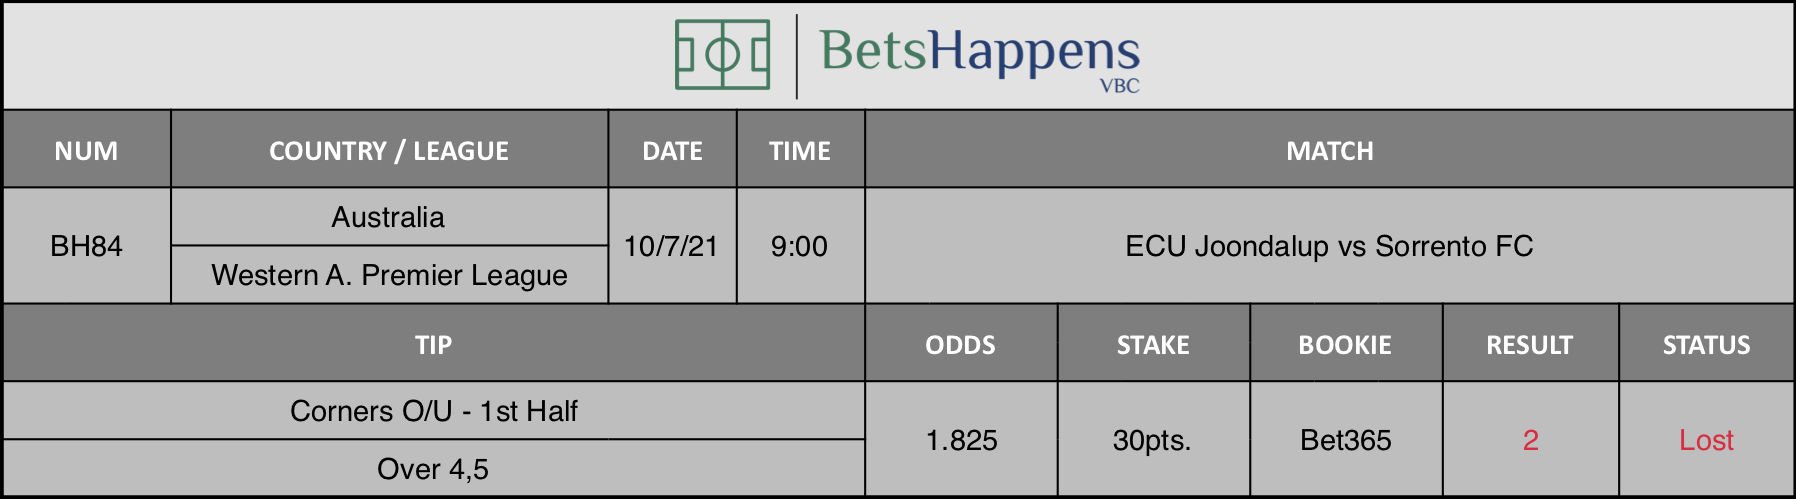 Results of our advice for the ECU Joondalup vs Sorrento FC match in which Corners O/U - 1st Half  Over 4,5 is recommended.